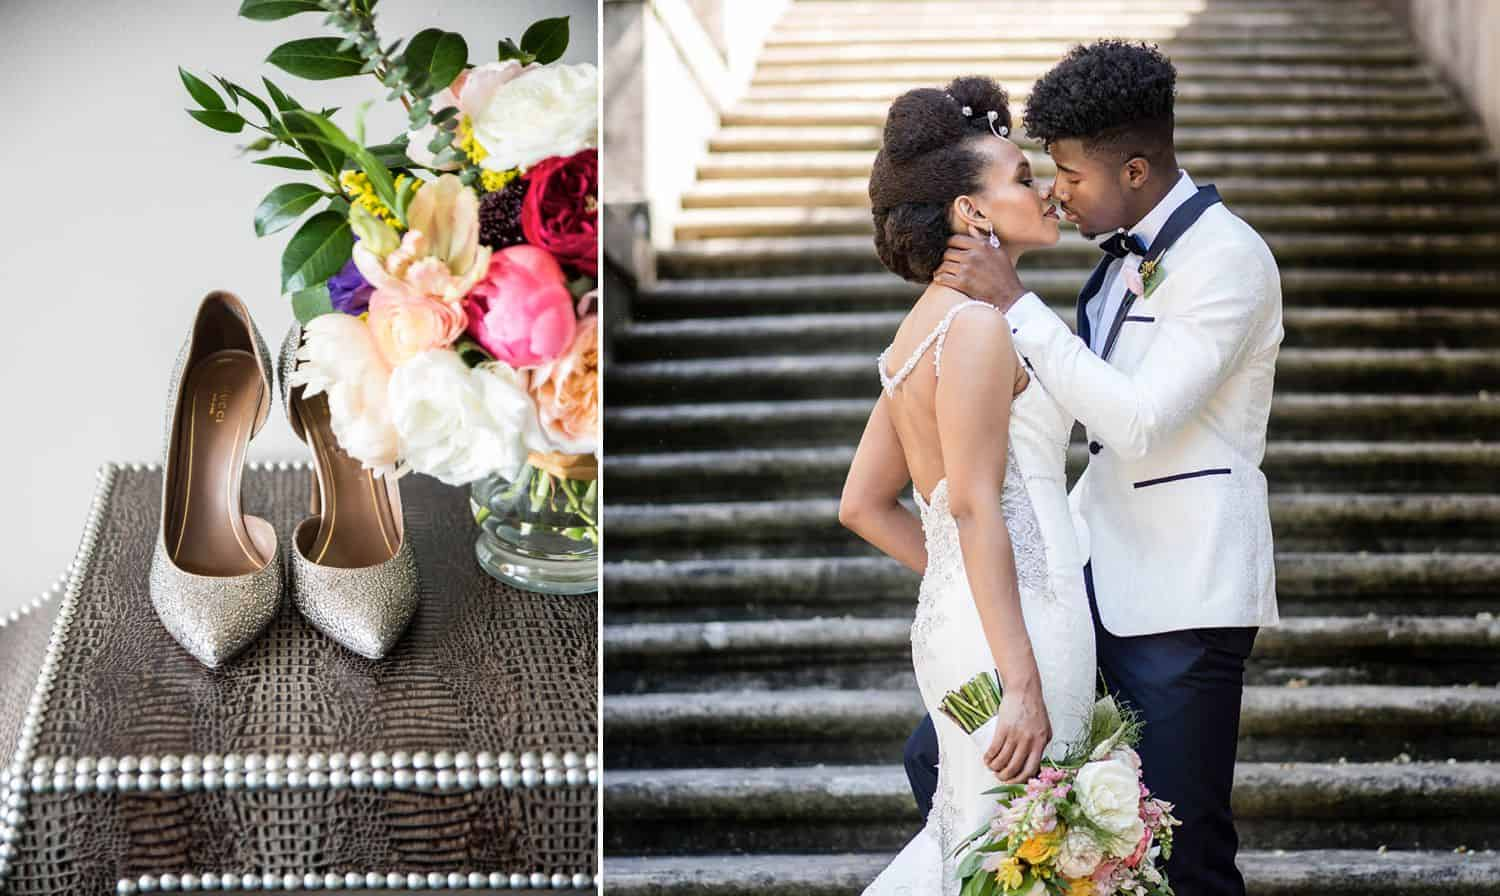 A pair of gold high heels sits on a table beside a bouquet. A bride in a white strapless dress kisses a groom in a black and white tuxedo.